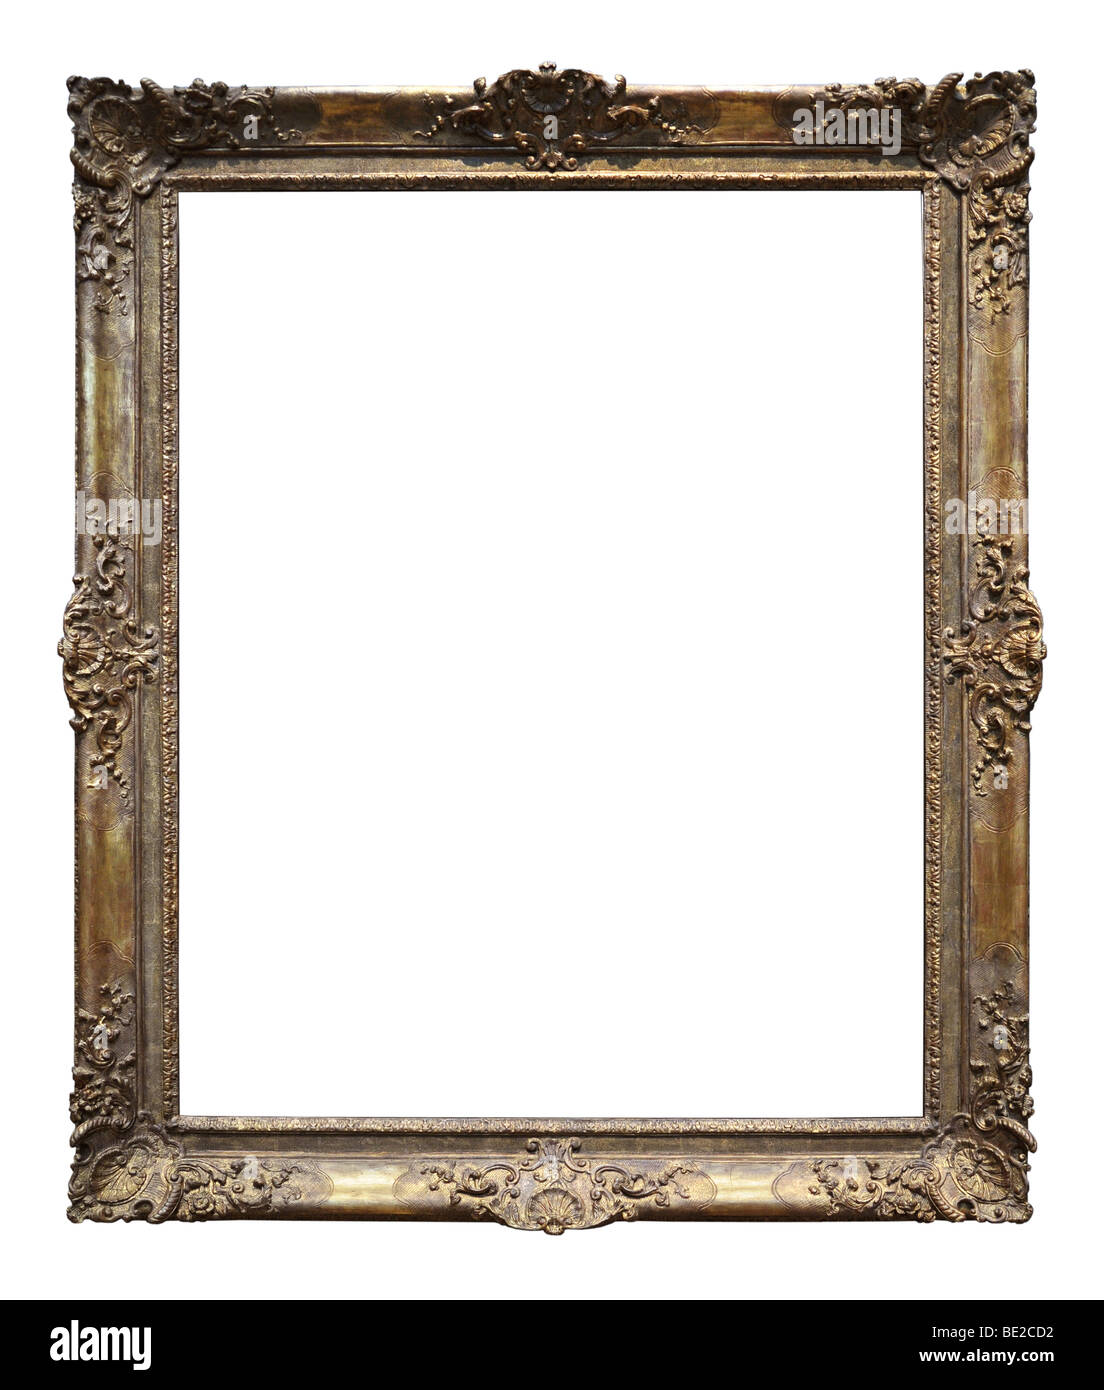 Vintage gold frame isolated over a white background - Stock Image